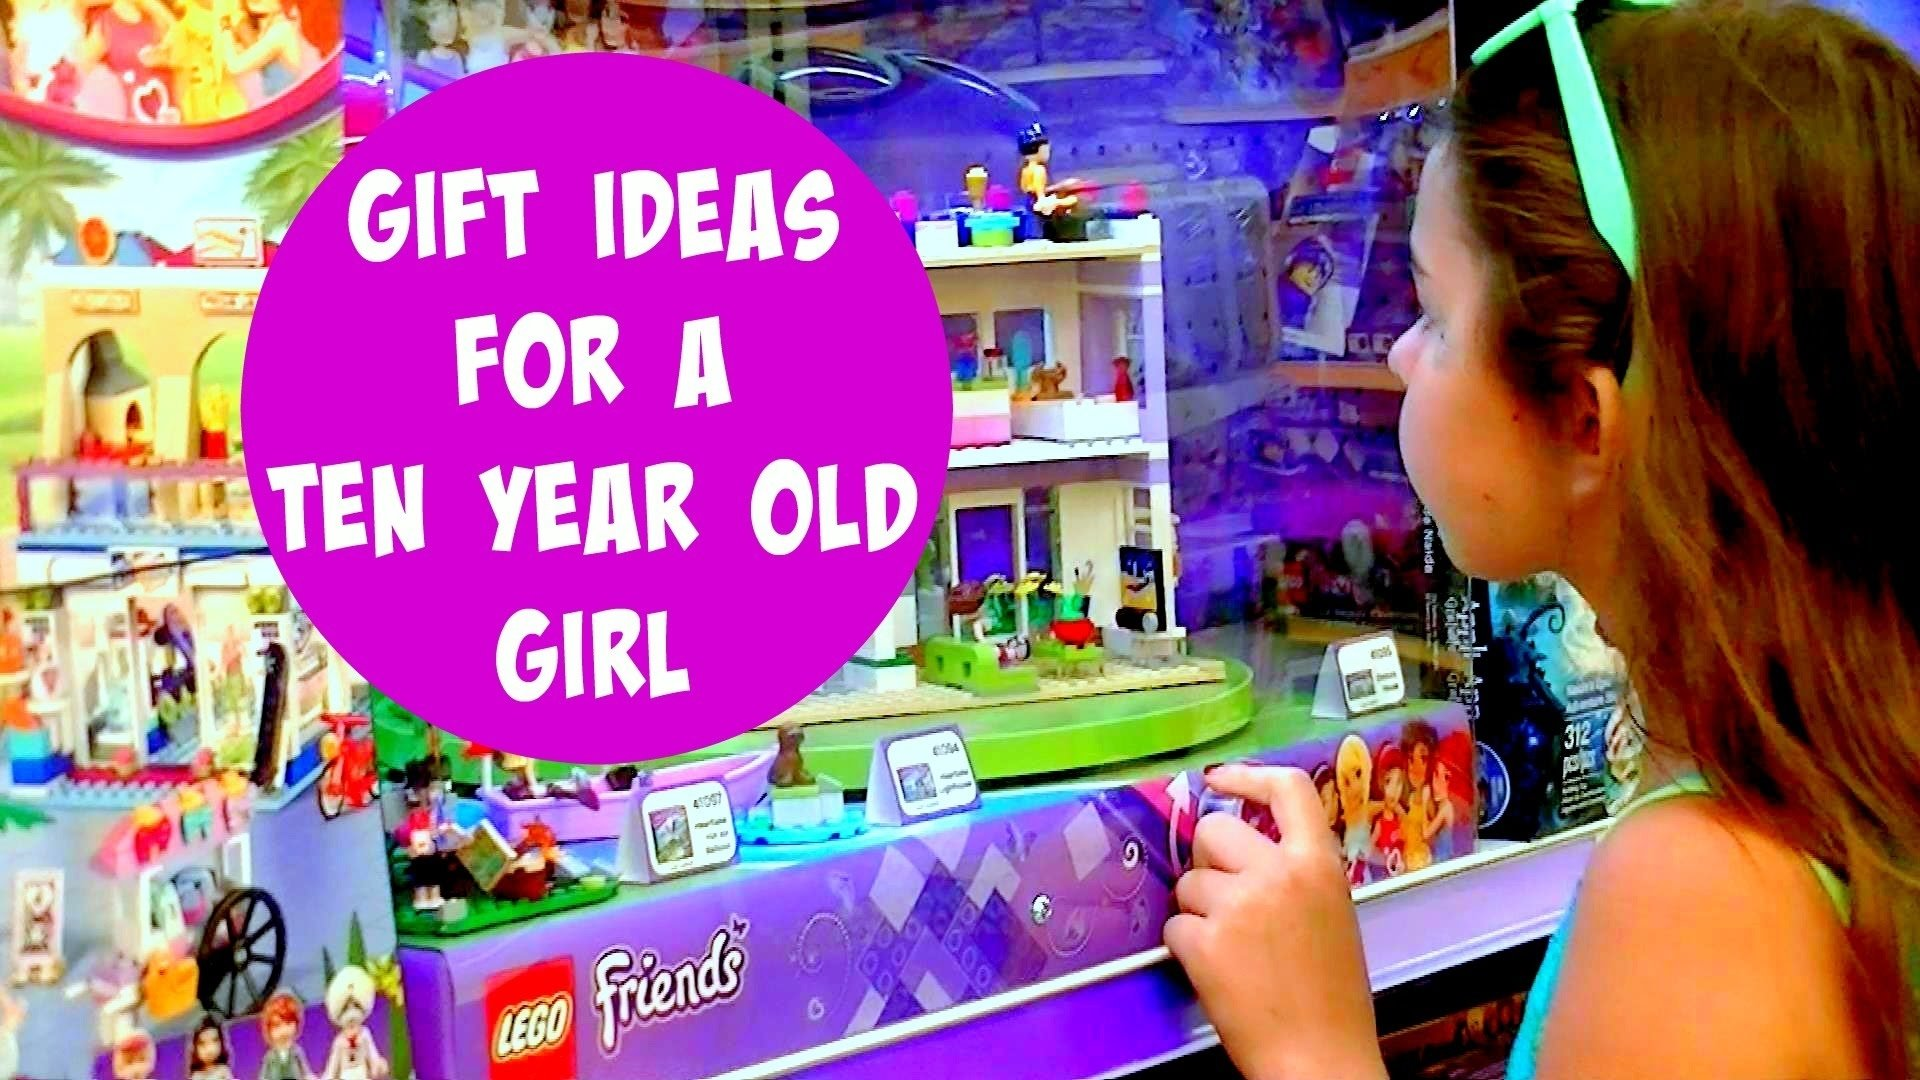 10 Pretty Birthday Ideas For 10 Year Olds birthday gift ideas for a 10 year old girl under 30 youtube 9 2021